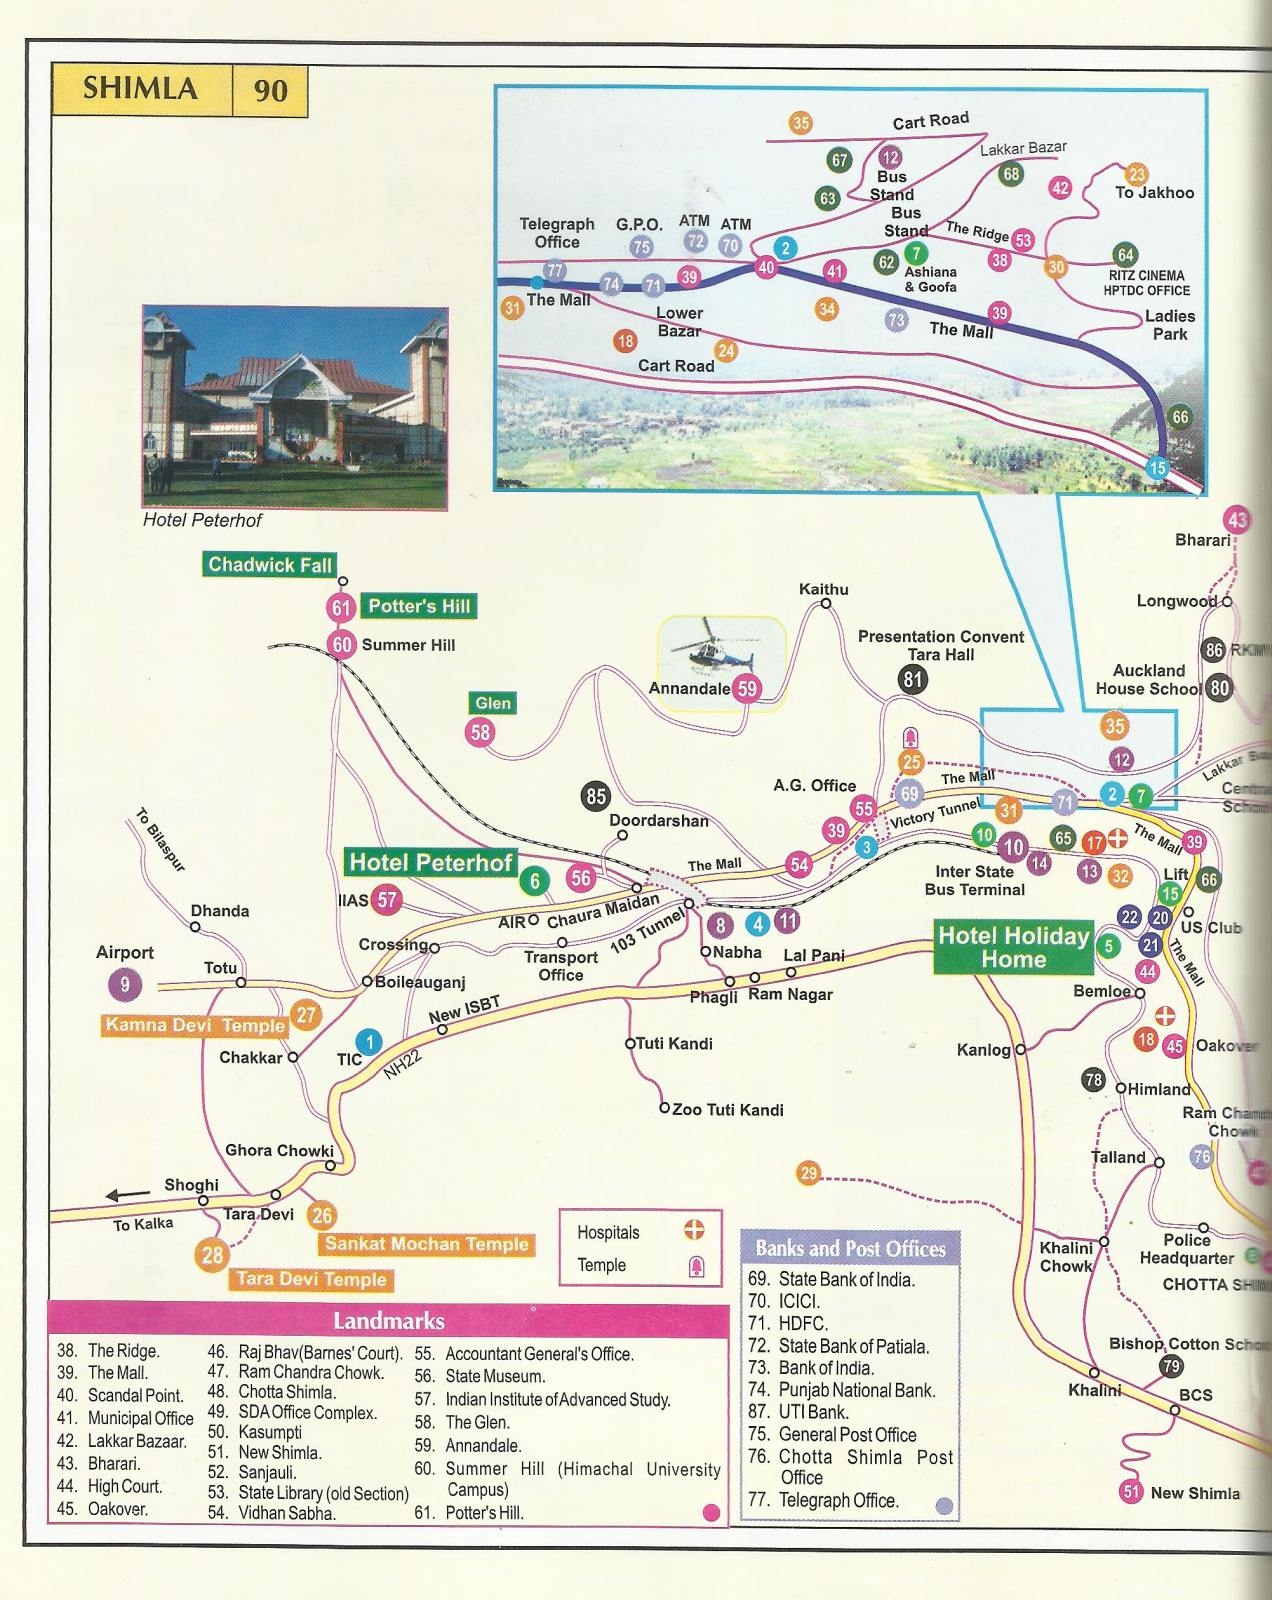 tourist map shimla city  – himachal pradesh travel guide - tourist map shimla city